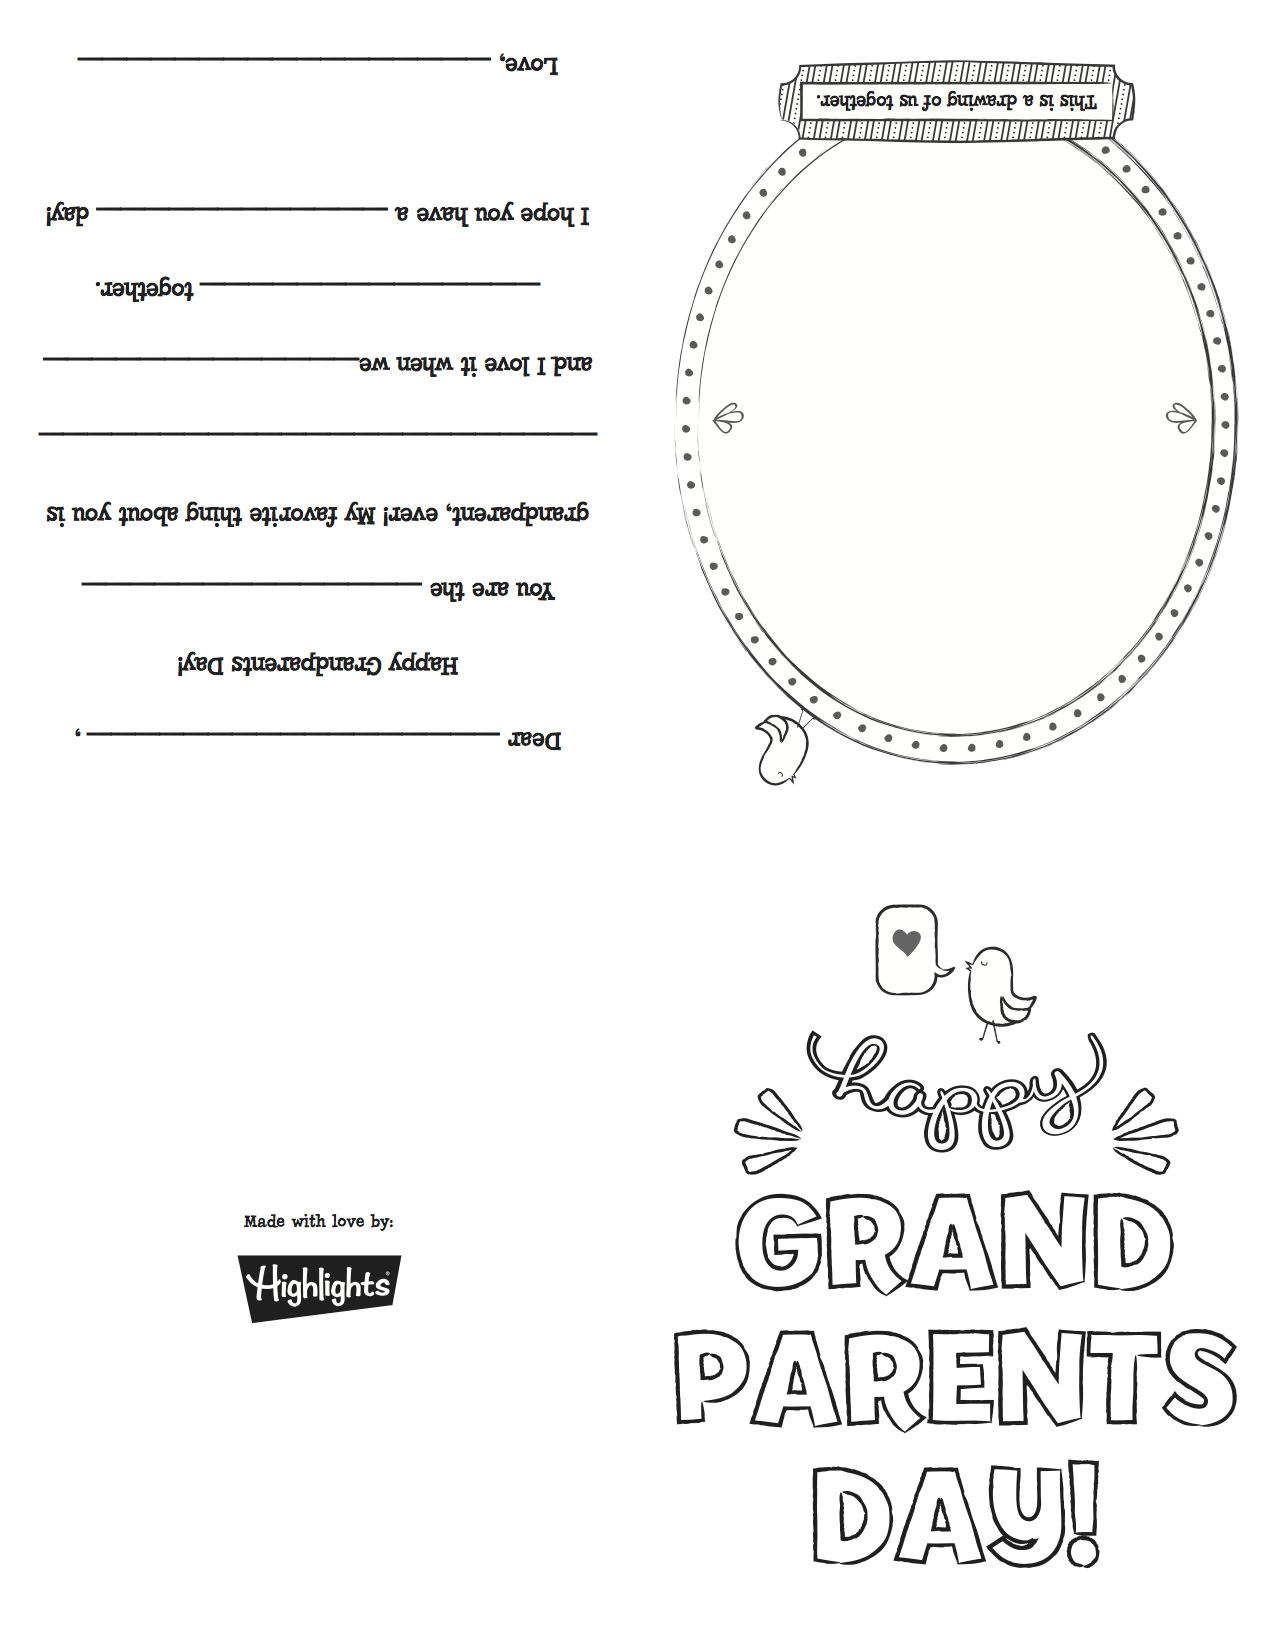 Grandparentsdaycard_Copy | Grandparents Day | Grandparents Day - Grandparents Day Cards Printable Free